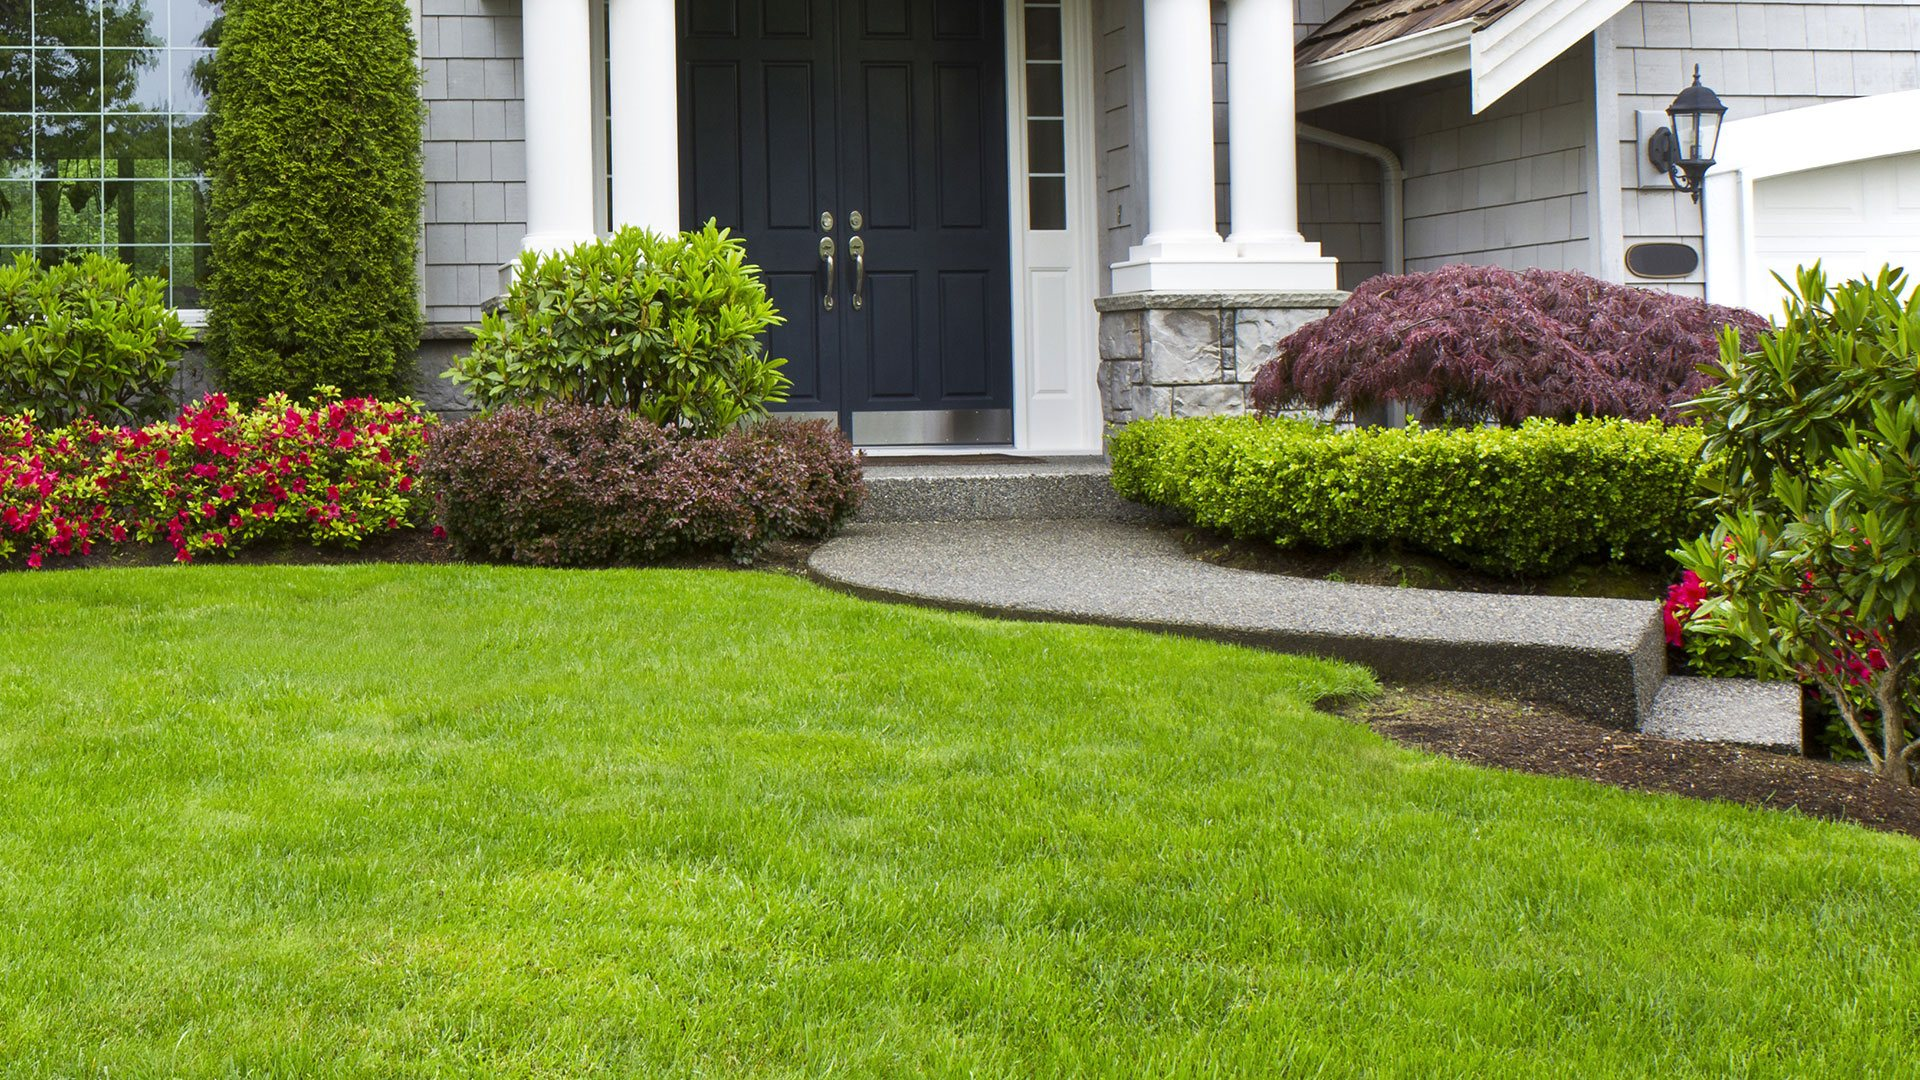 Home pittsburgh garden design lawn maintenance and for Garden landscaping services